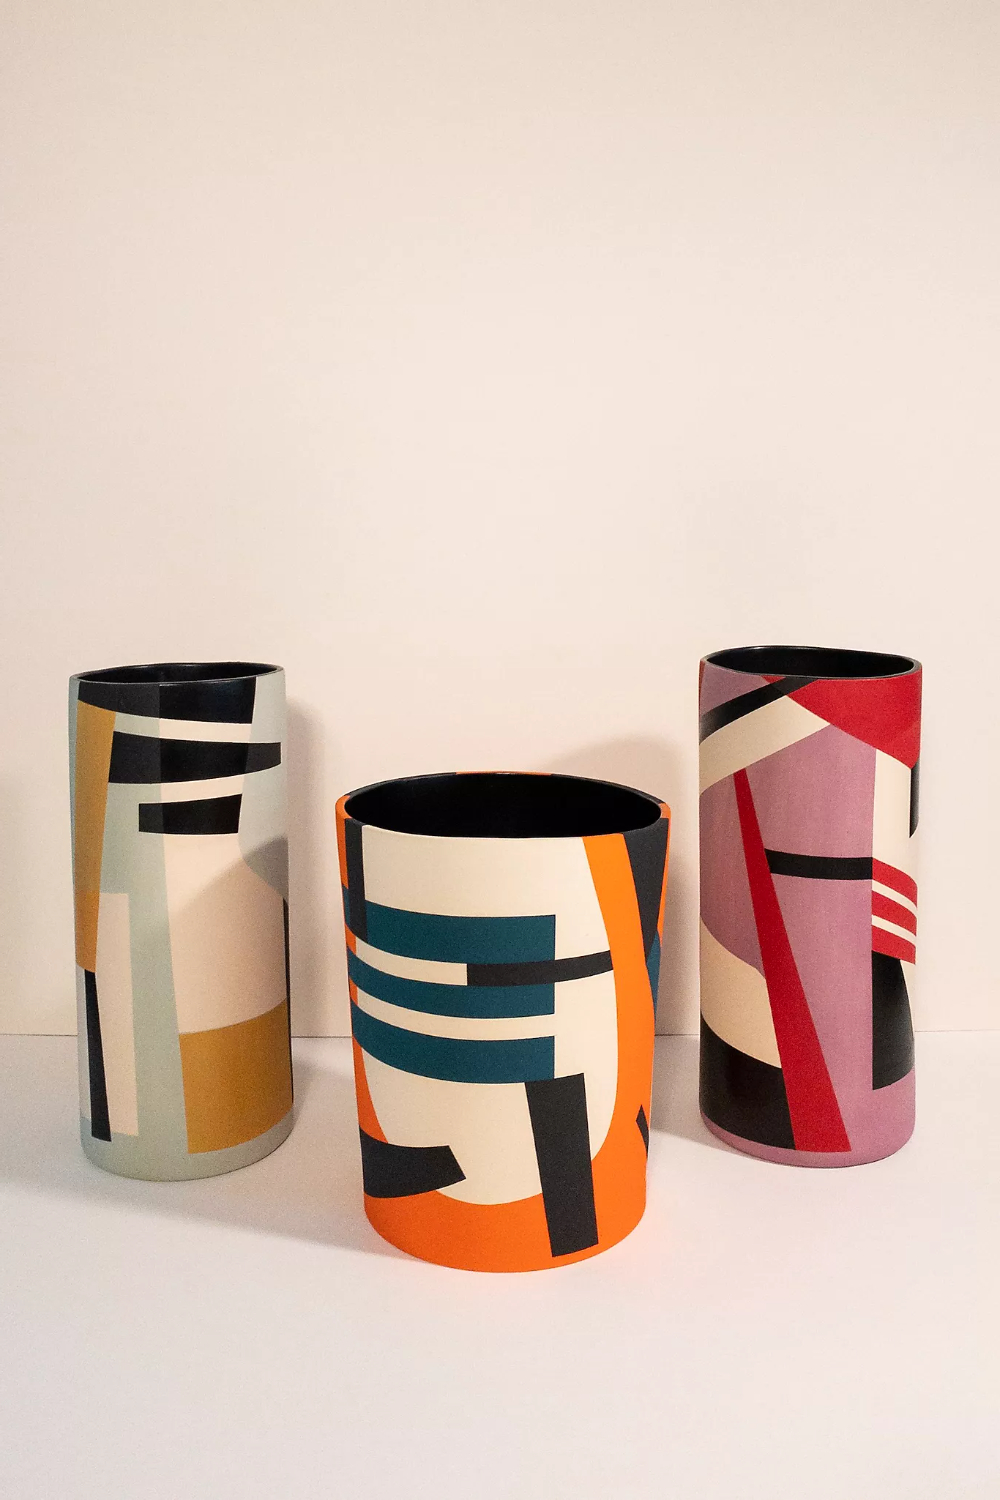 Svendsen Ceramic Garden Stools With Regard To Recent Sally Blair Ceramics Vase (View 23 of 30)